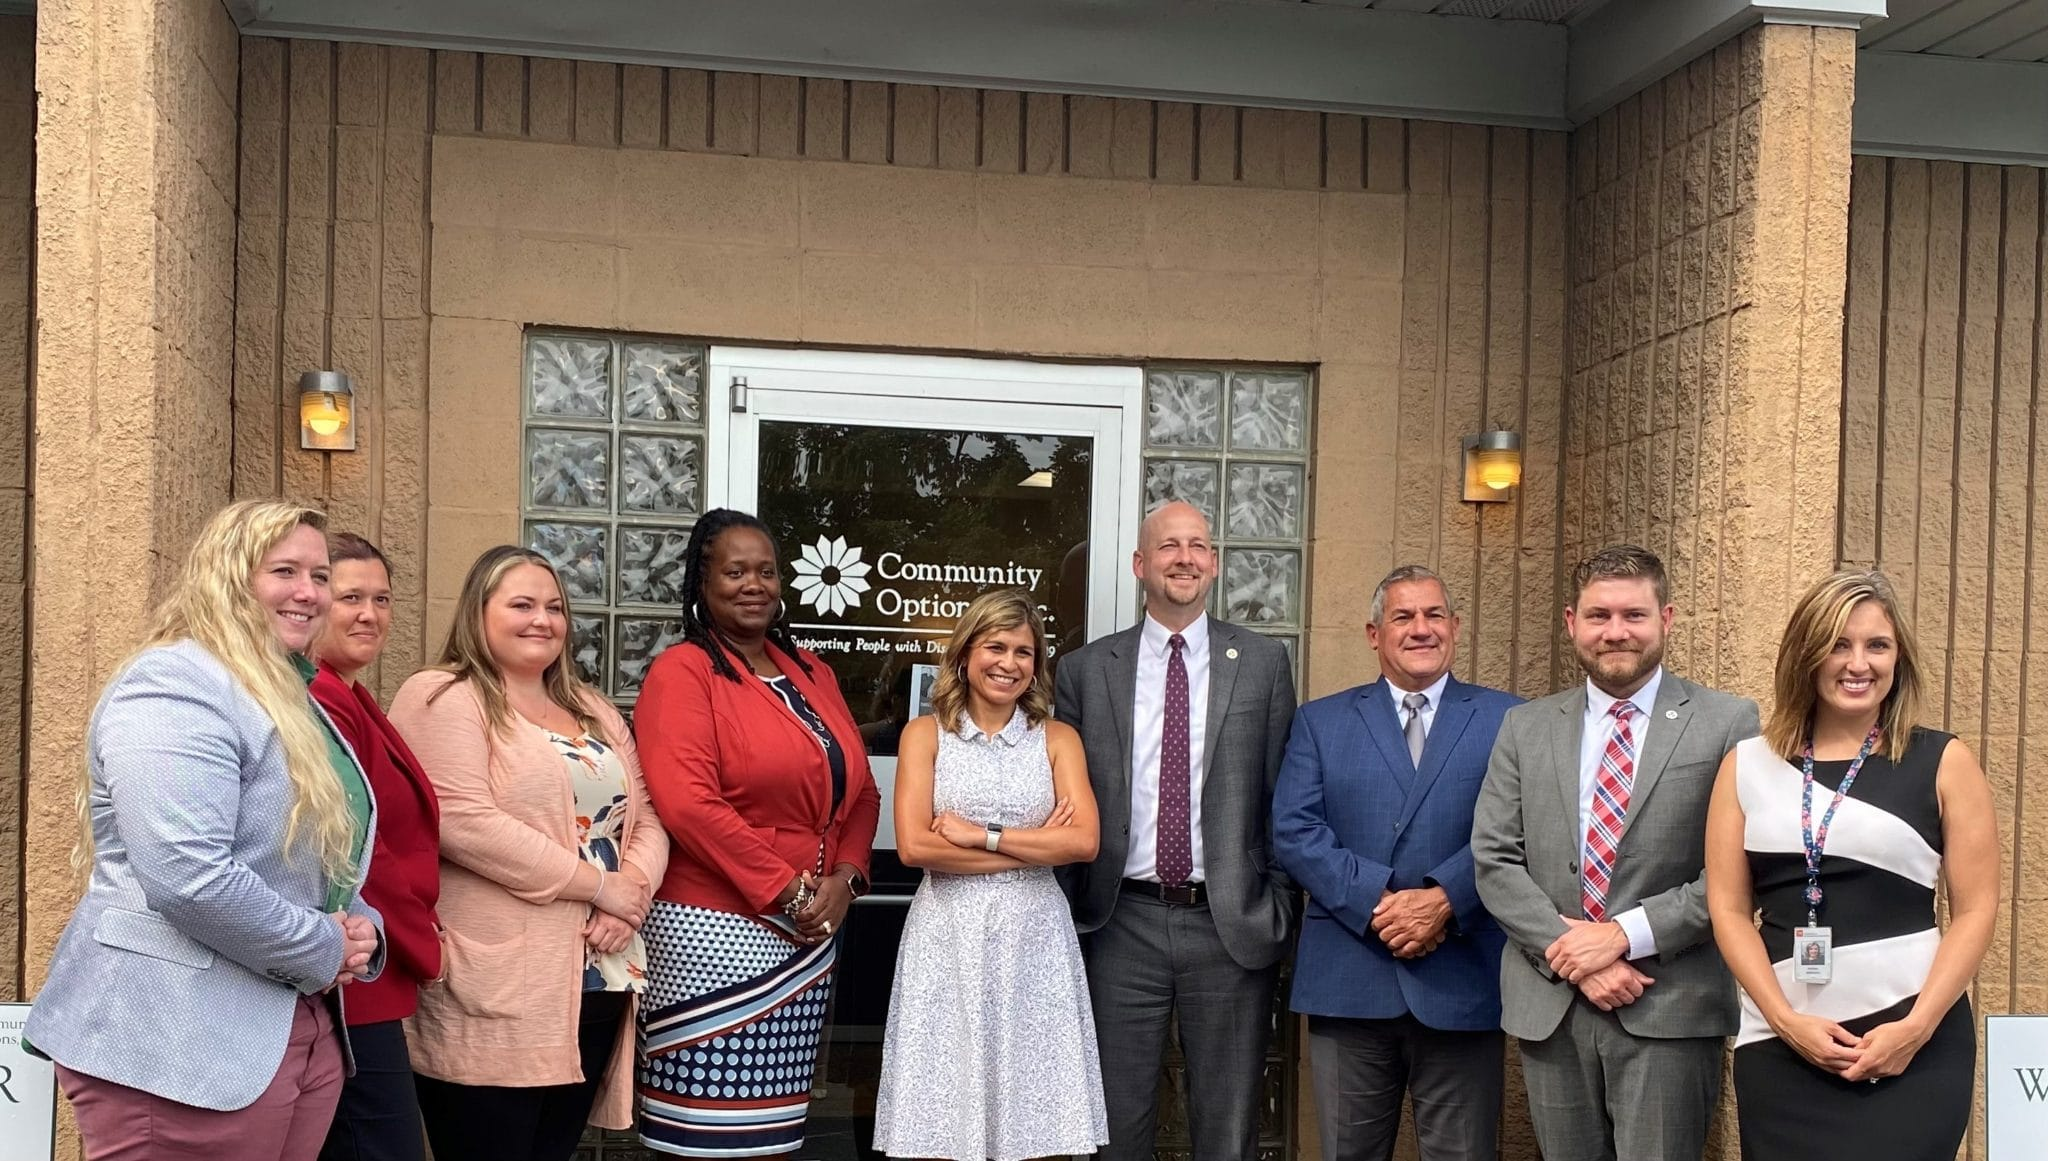 DIDD Commissioner Brad Turner pictured with Community Options' Tennessee leadership.